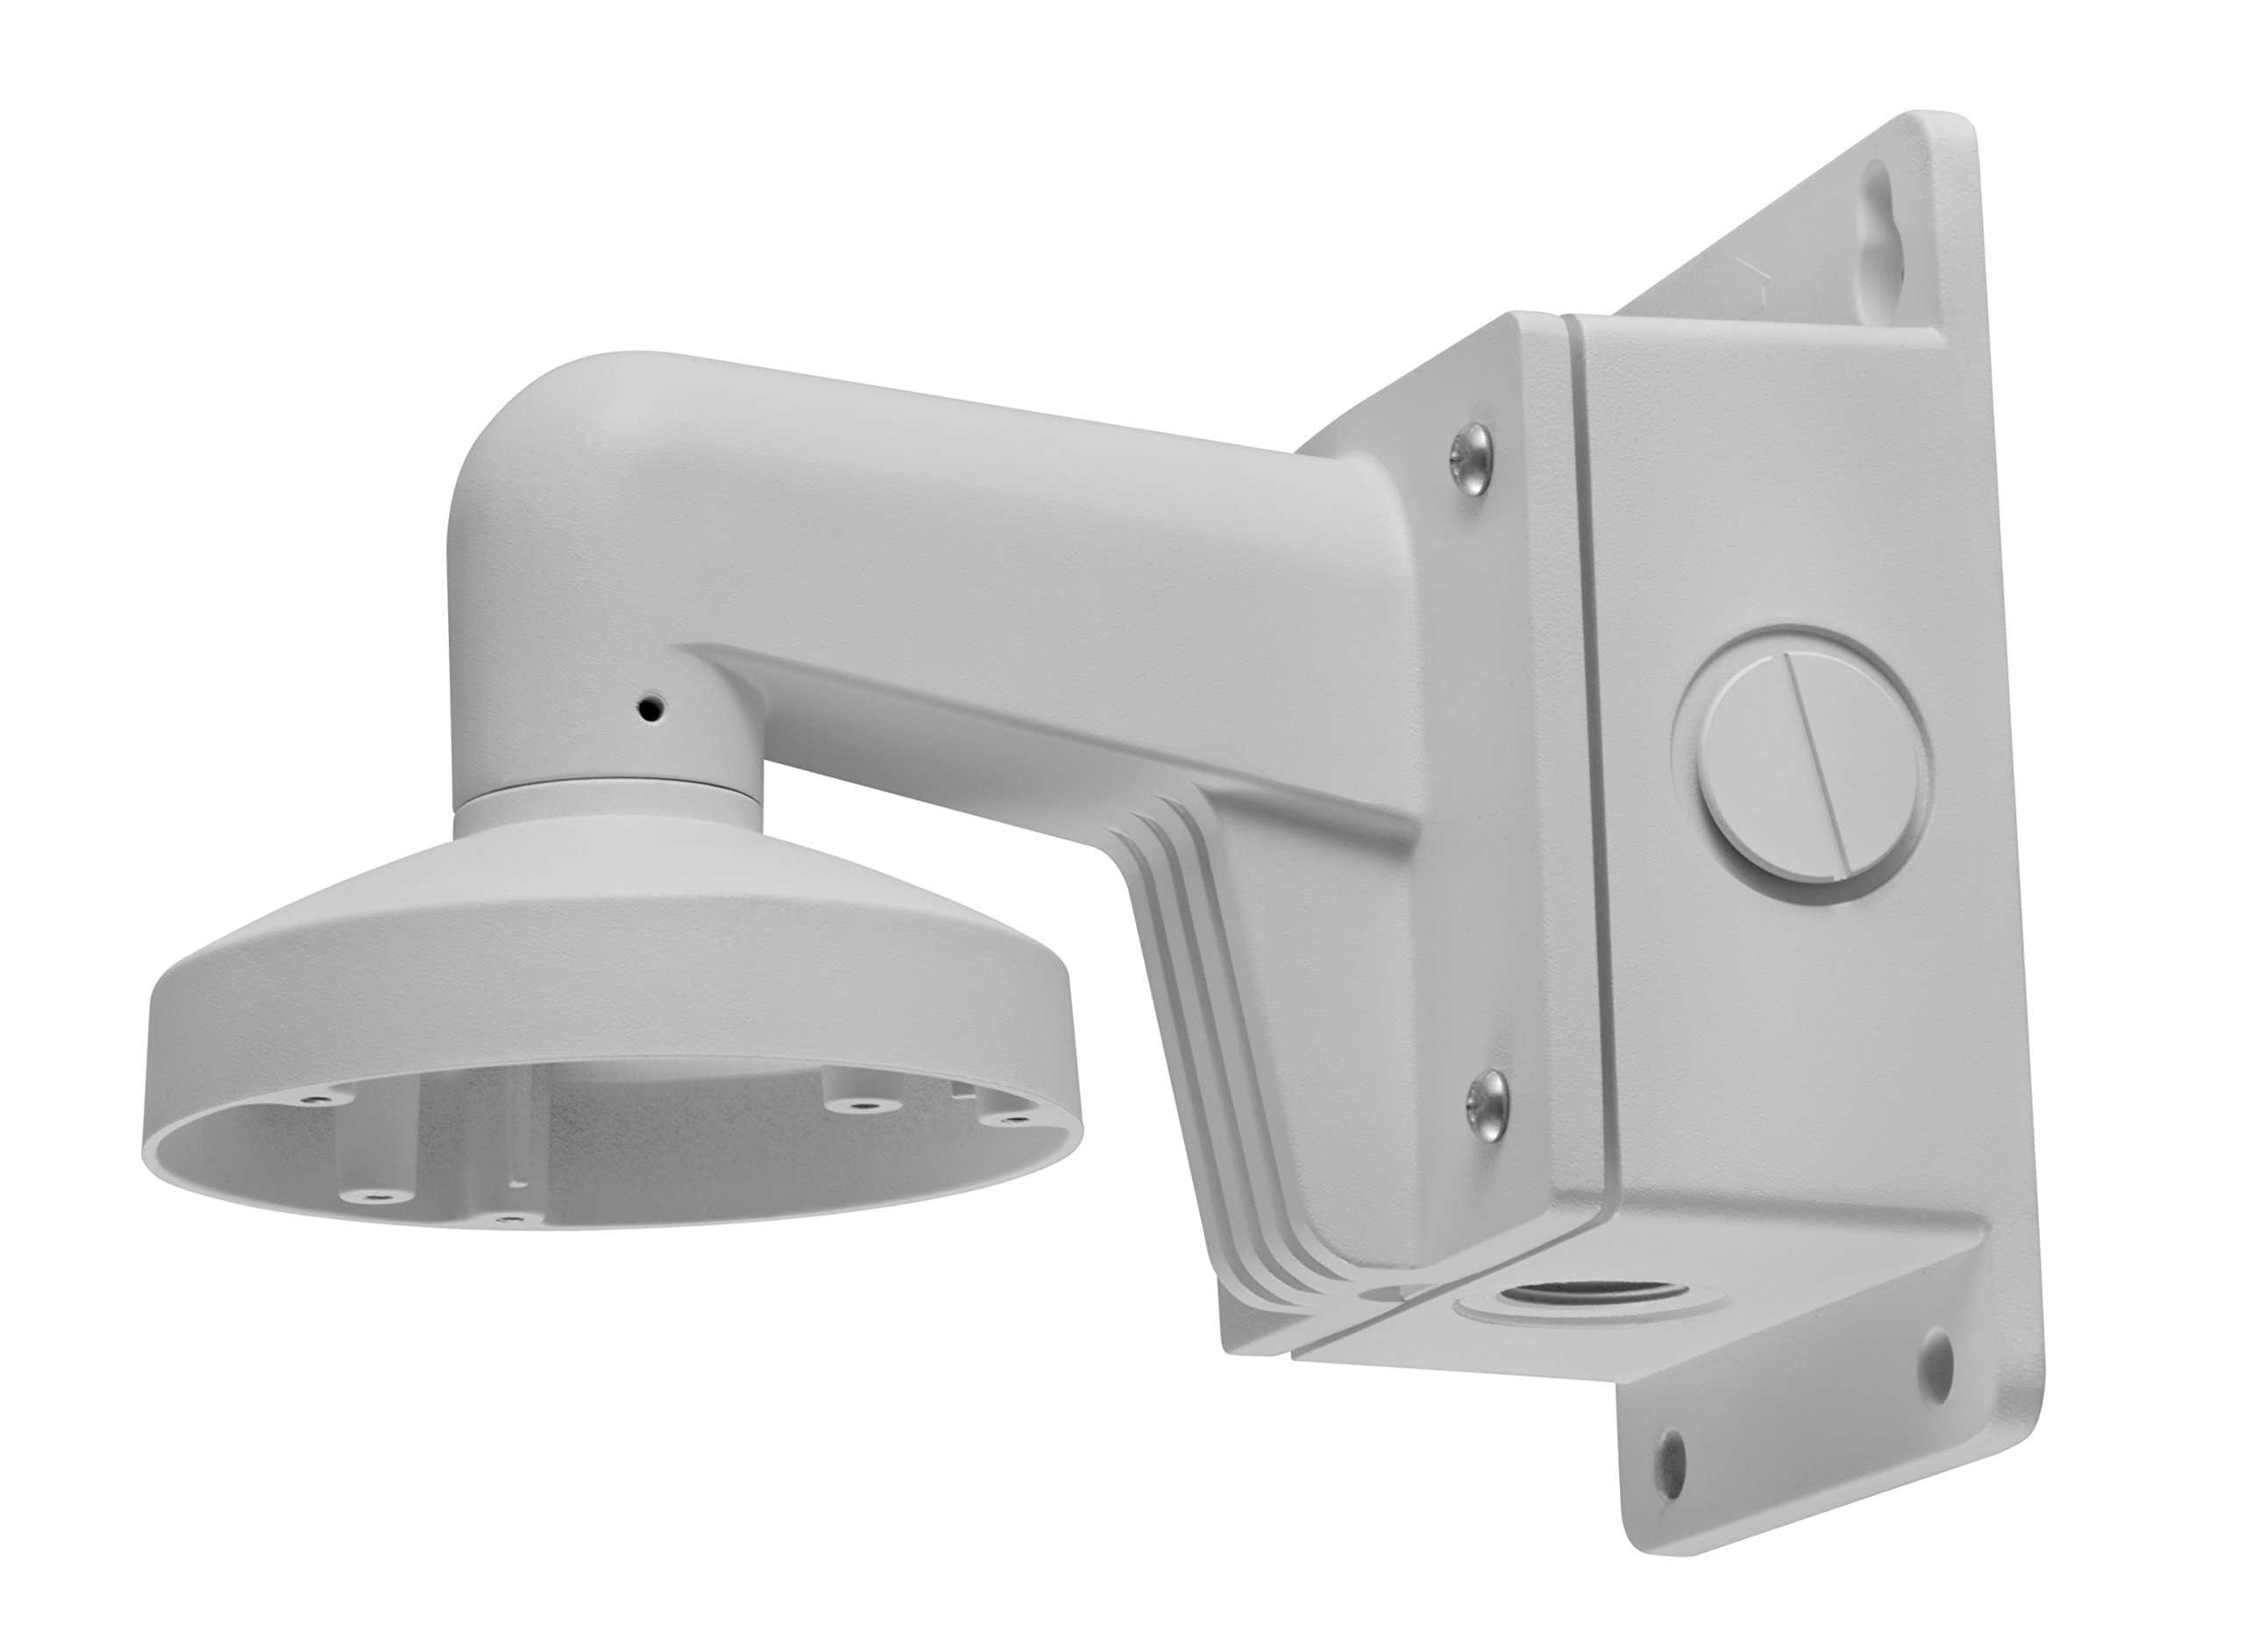 WMS WML PC110B DS-1272ZJ-110B Wall Mount Bracket for Hikvision Fixed Lens Dome IP Camera DS-2CD21x2 by Kenuco